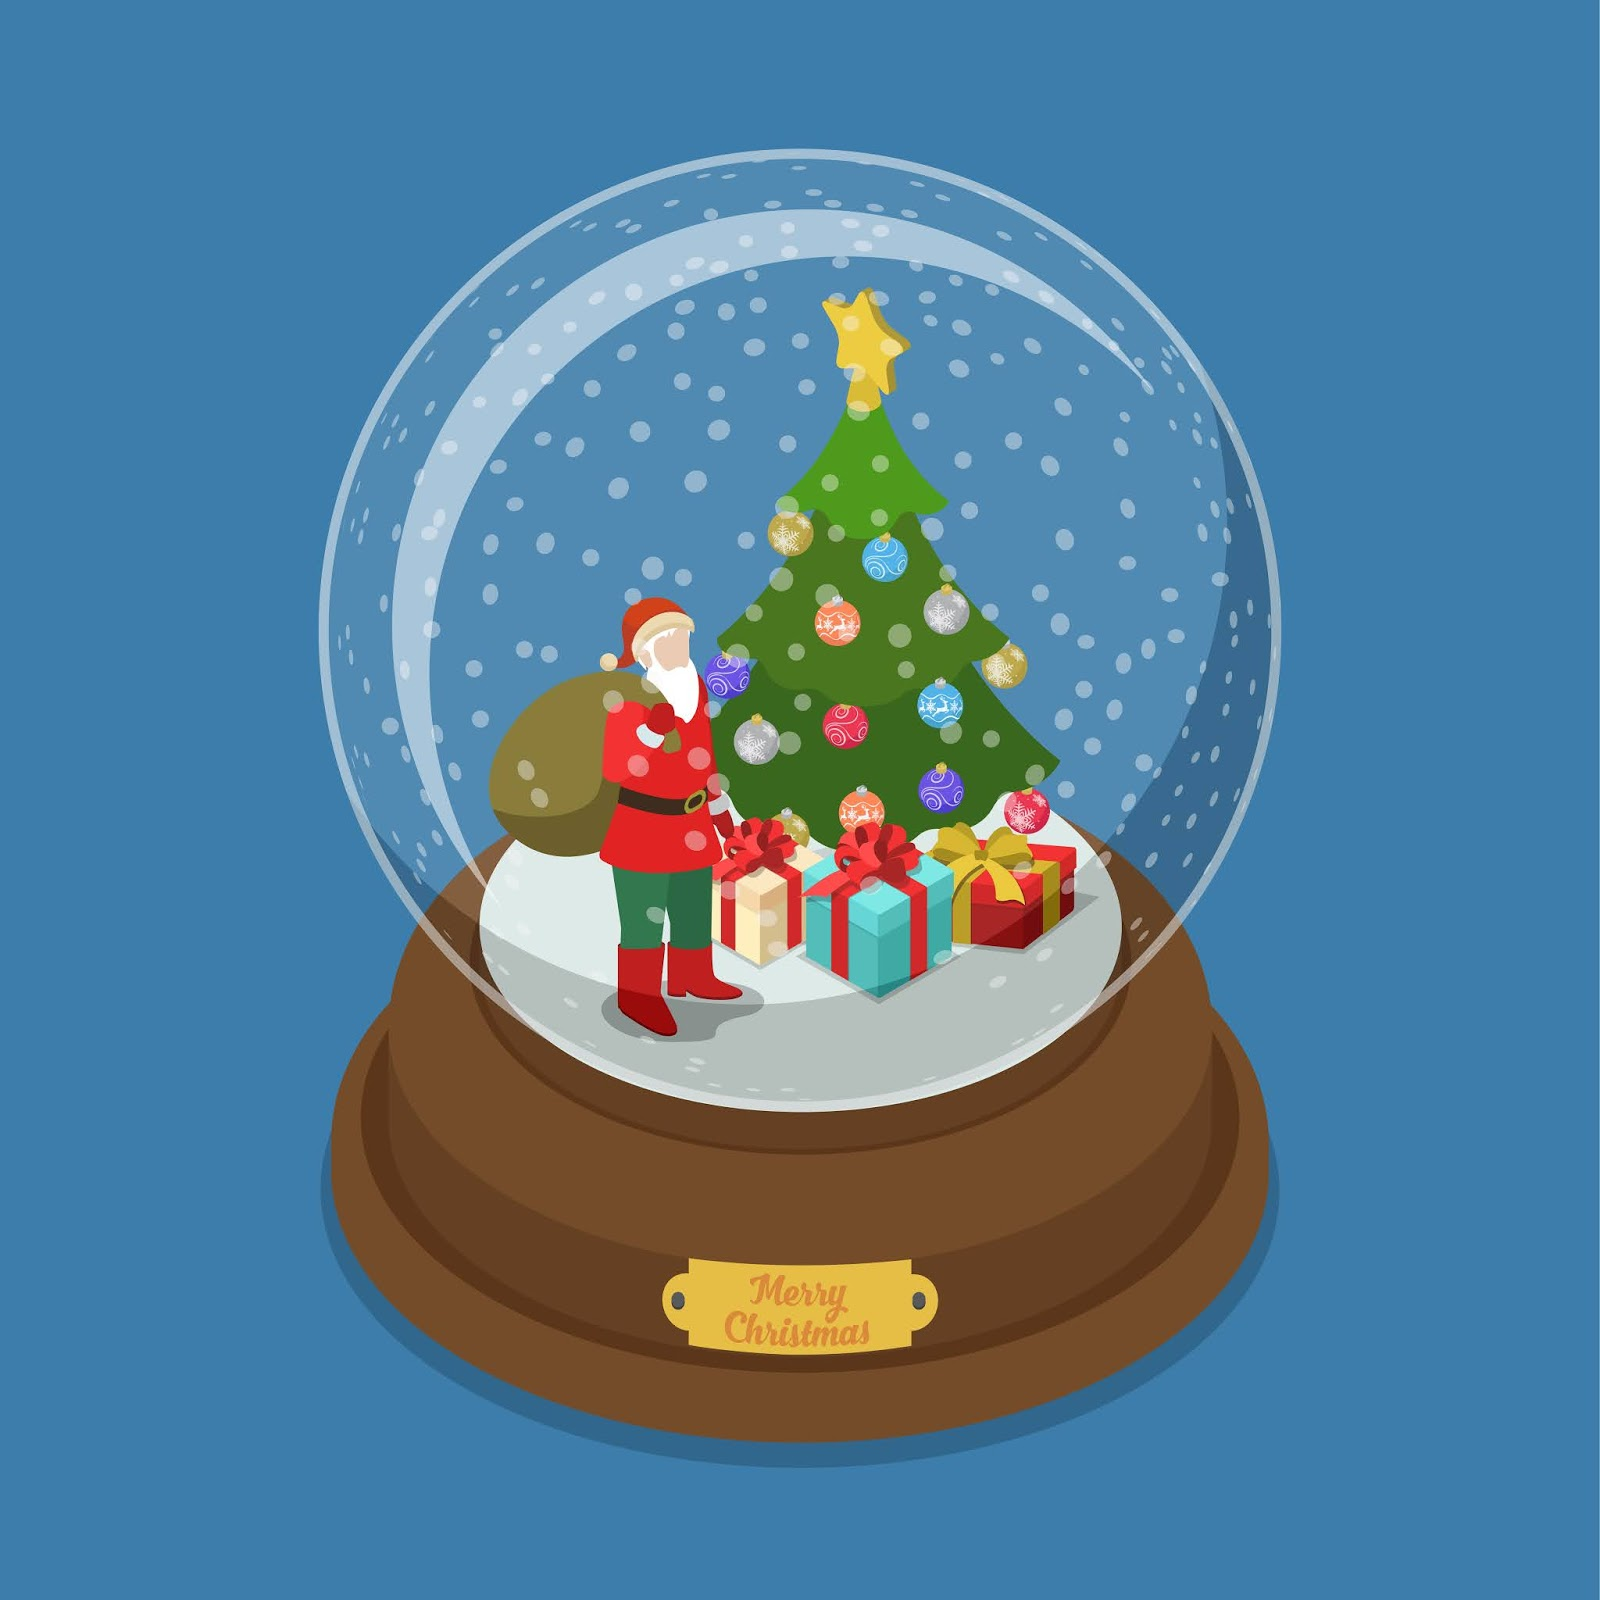 Merry Christmas Card Free Download Vector CDR, AI, EPS and PNG Formats